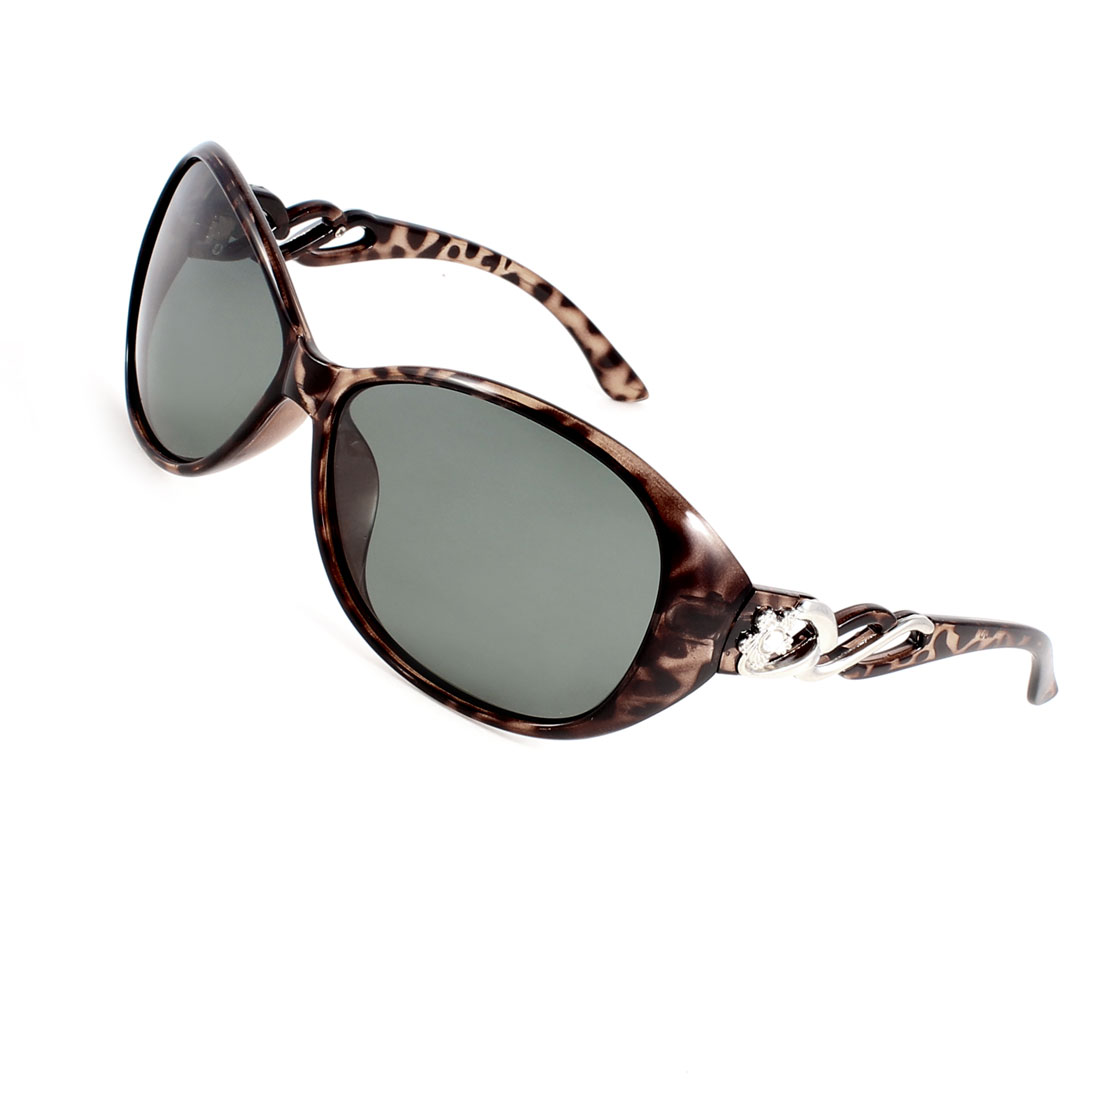 Women Outdoor Flower Rhinestone Decor Arms Eyeglasses Polarized Sunglasses Brown